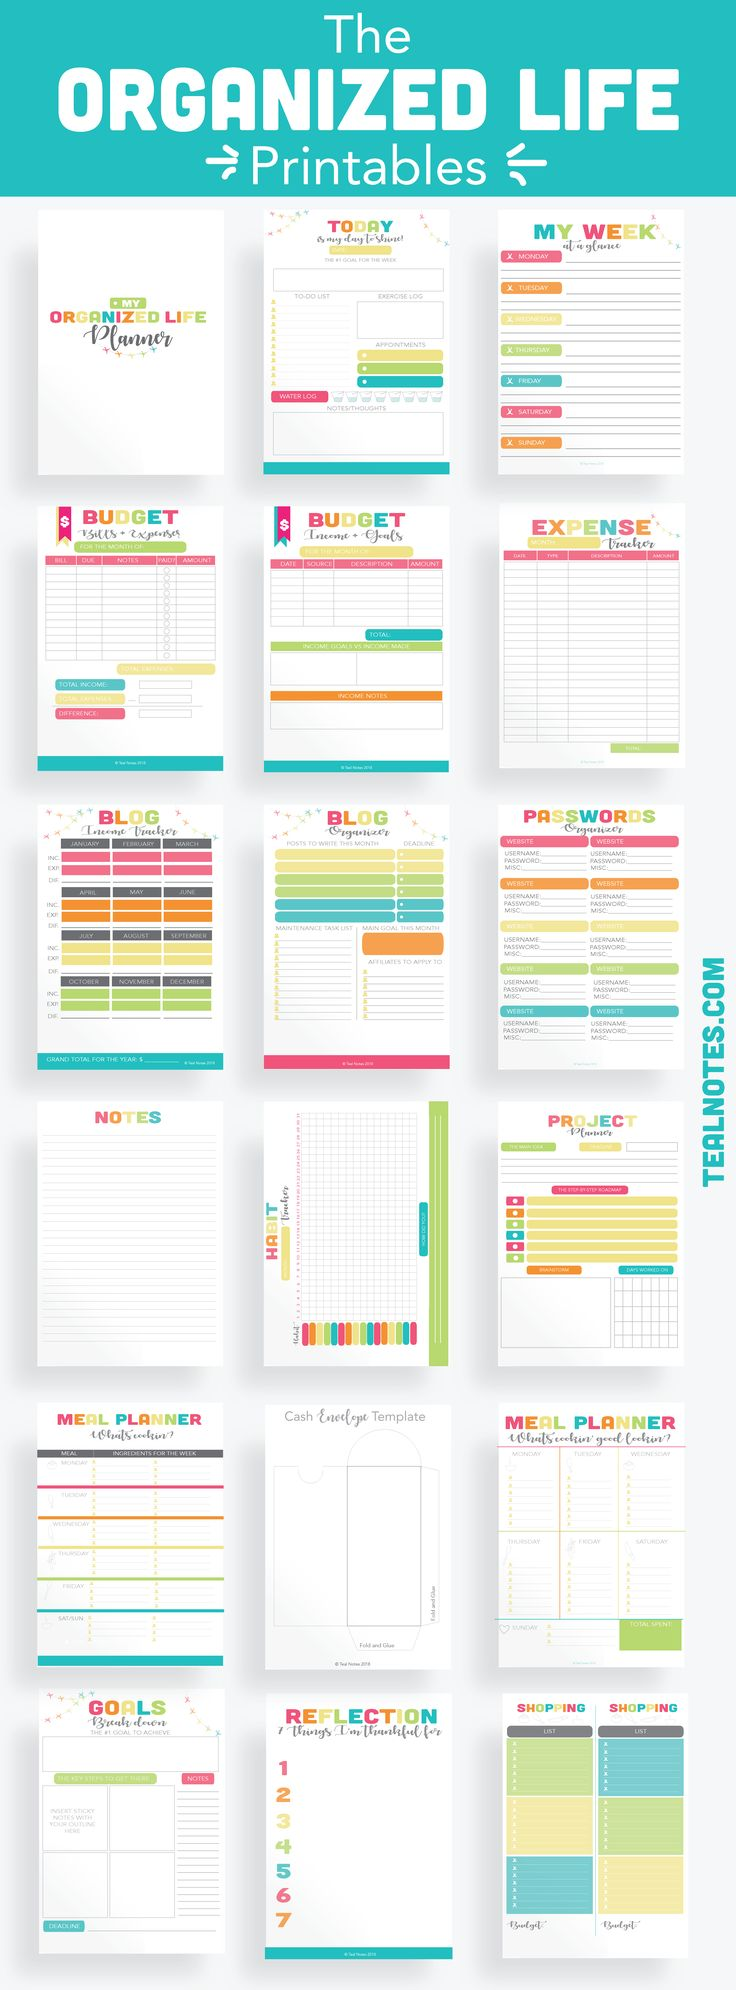 The Organized Life Printables | 18 Printables to organize your whole life | Gorgeous printable pages for your home |